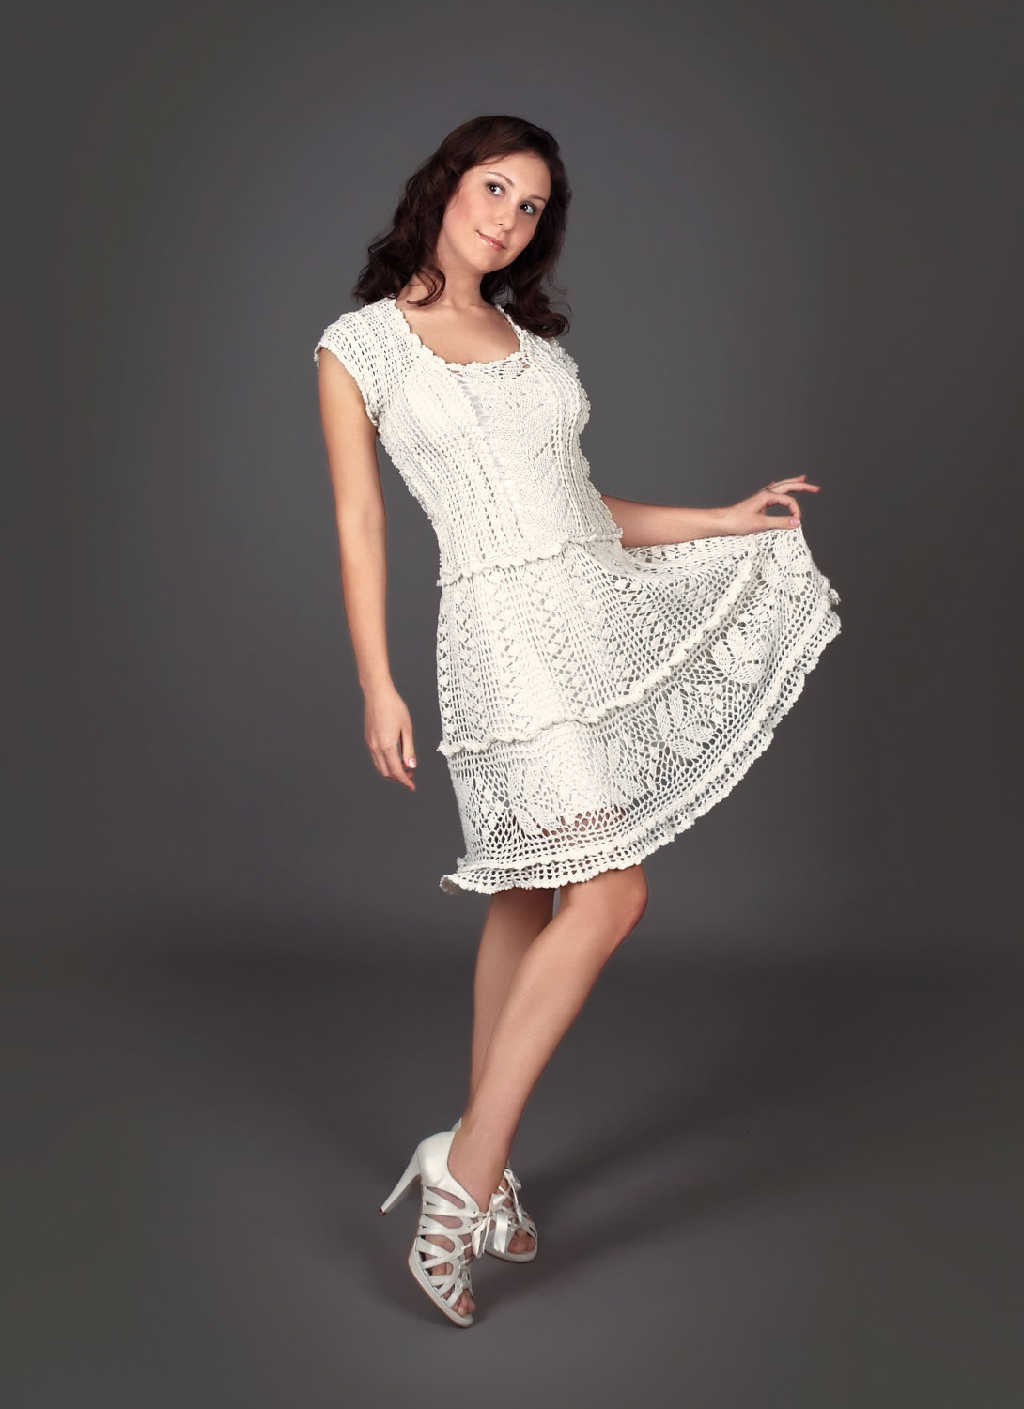 White Crochet Dress Inspirational Crinochet the Whites Have It Of Adorable 49 Pics White Crochet Dress